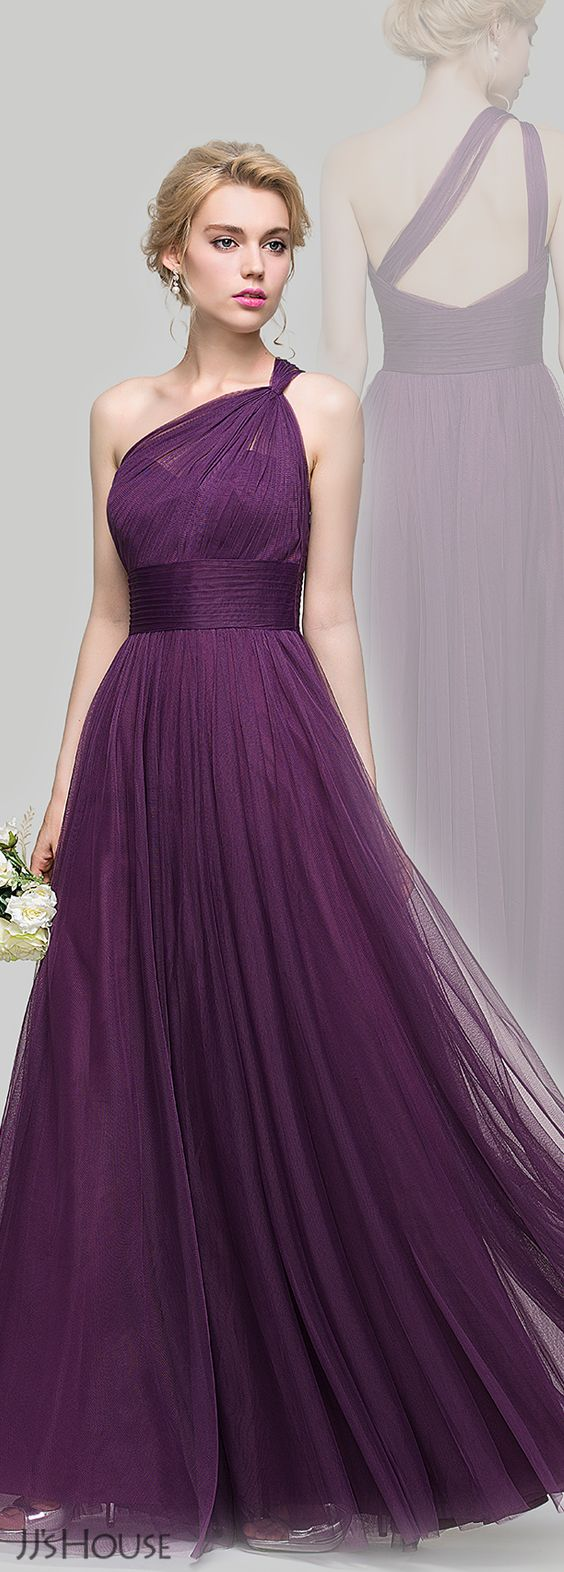 JJsHouse #Bridesmaid | Gem | Pinterest | Damitas de honor, Damas y ...